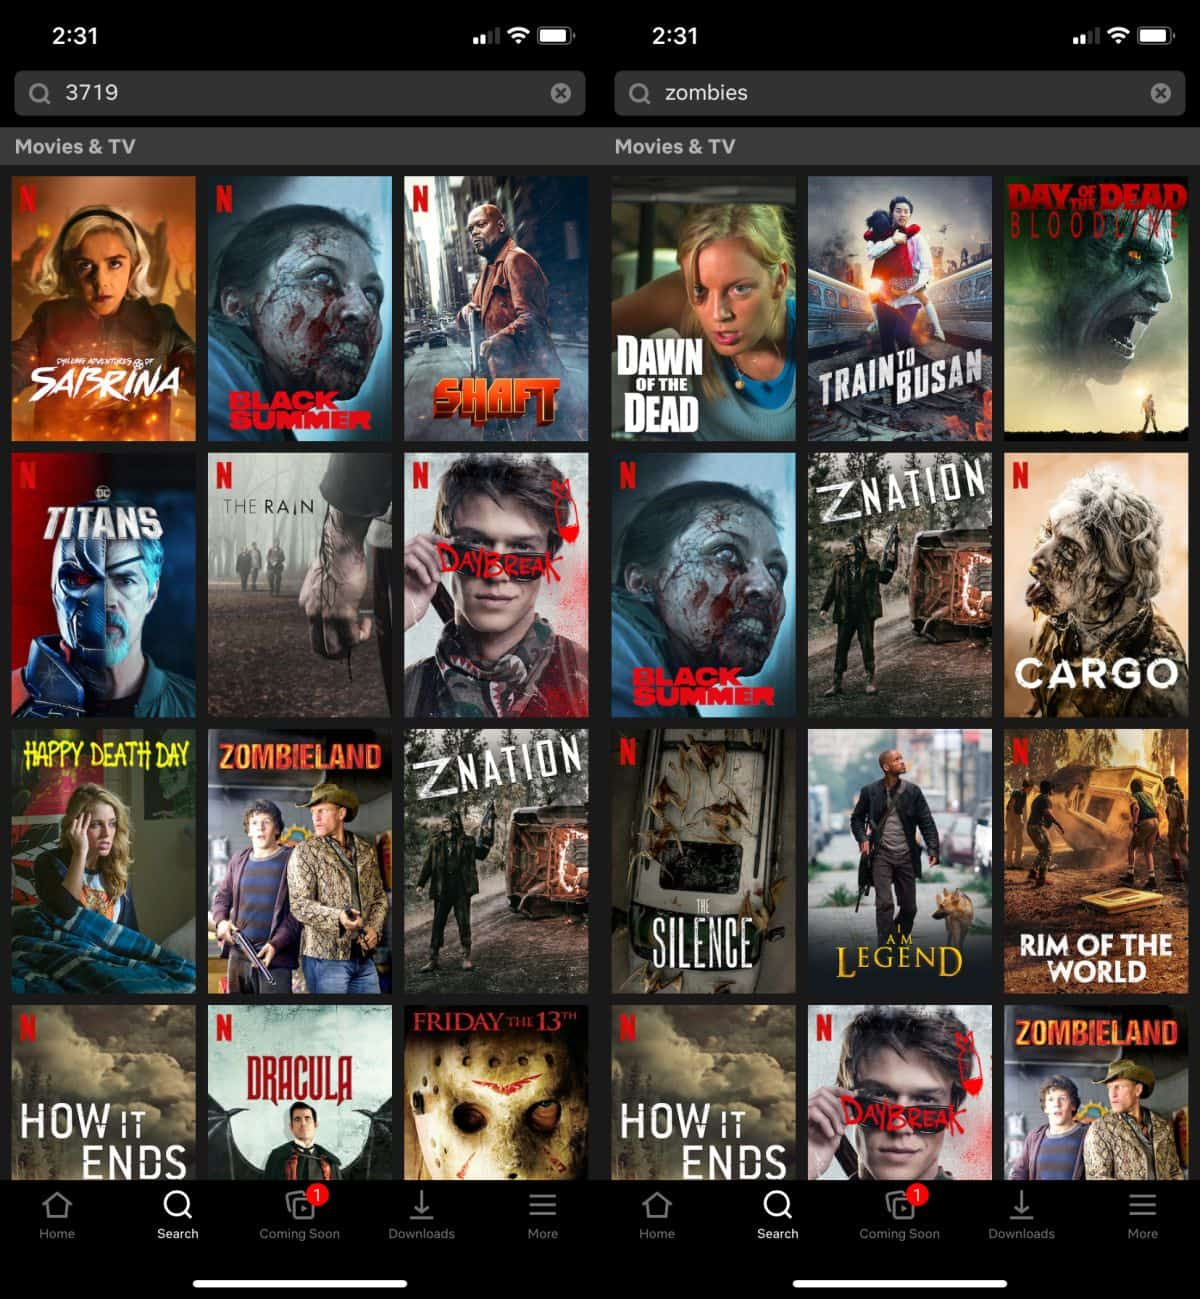 how to use category codes in the netflix apps How to use category codes in the Netflix apps